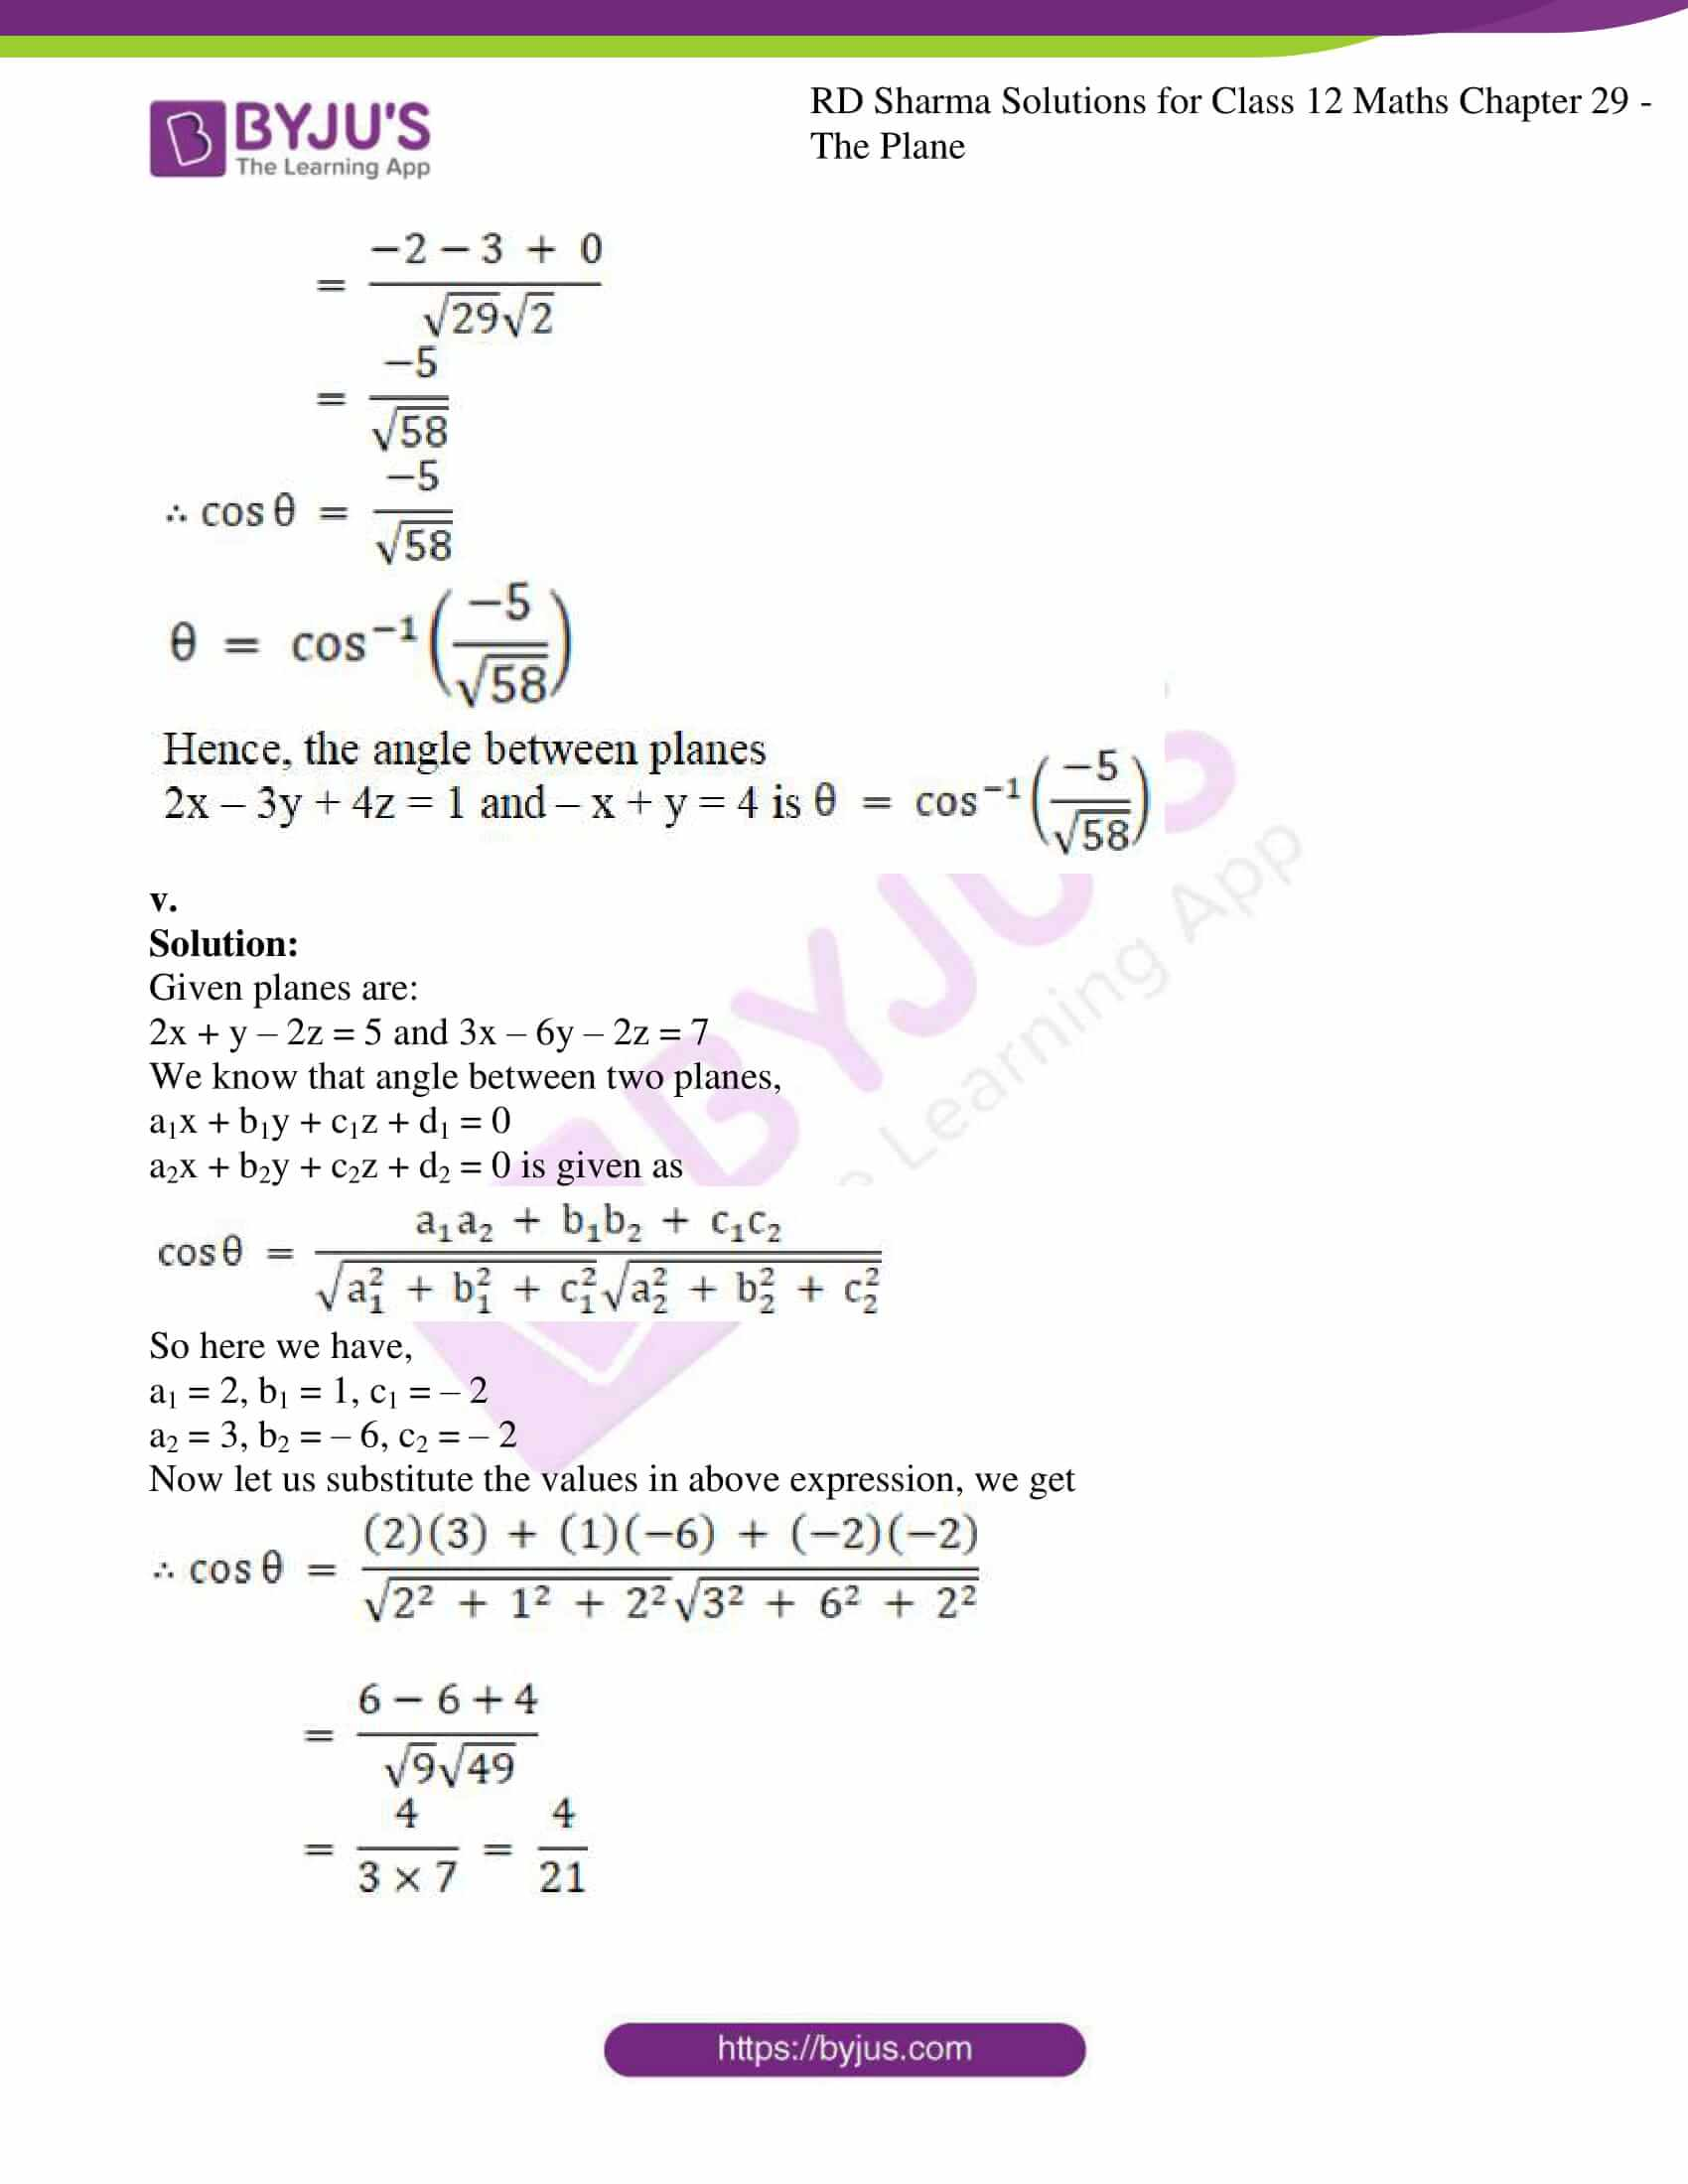 rd sharma solutions for class 12 maths chapter 29 ex 6 07